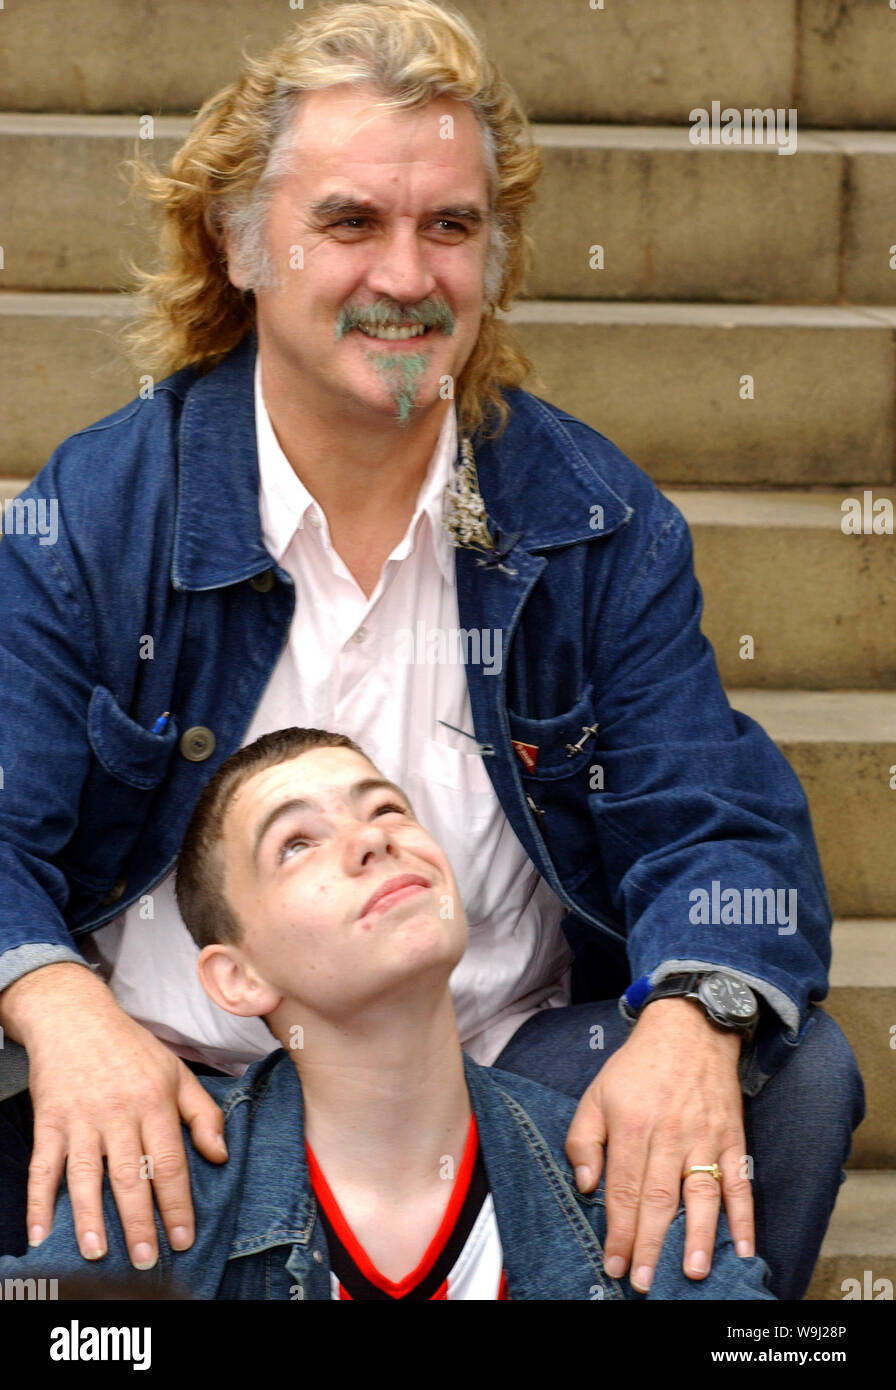 Pictured At Edinburgh S Sheraton Grand Hotel Today Monday 13 8 01 Are Stars Of The New Uk Film Gabriel And Me Billy Connolly And Sean Landless The Film Has It S Uk Premier